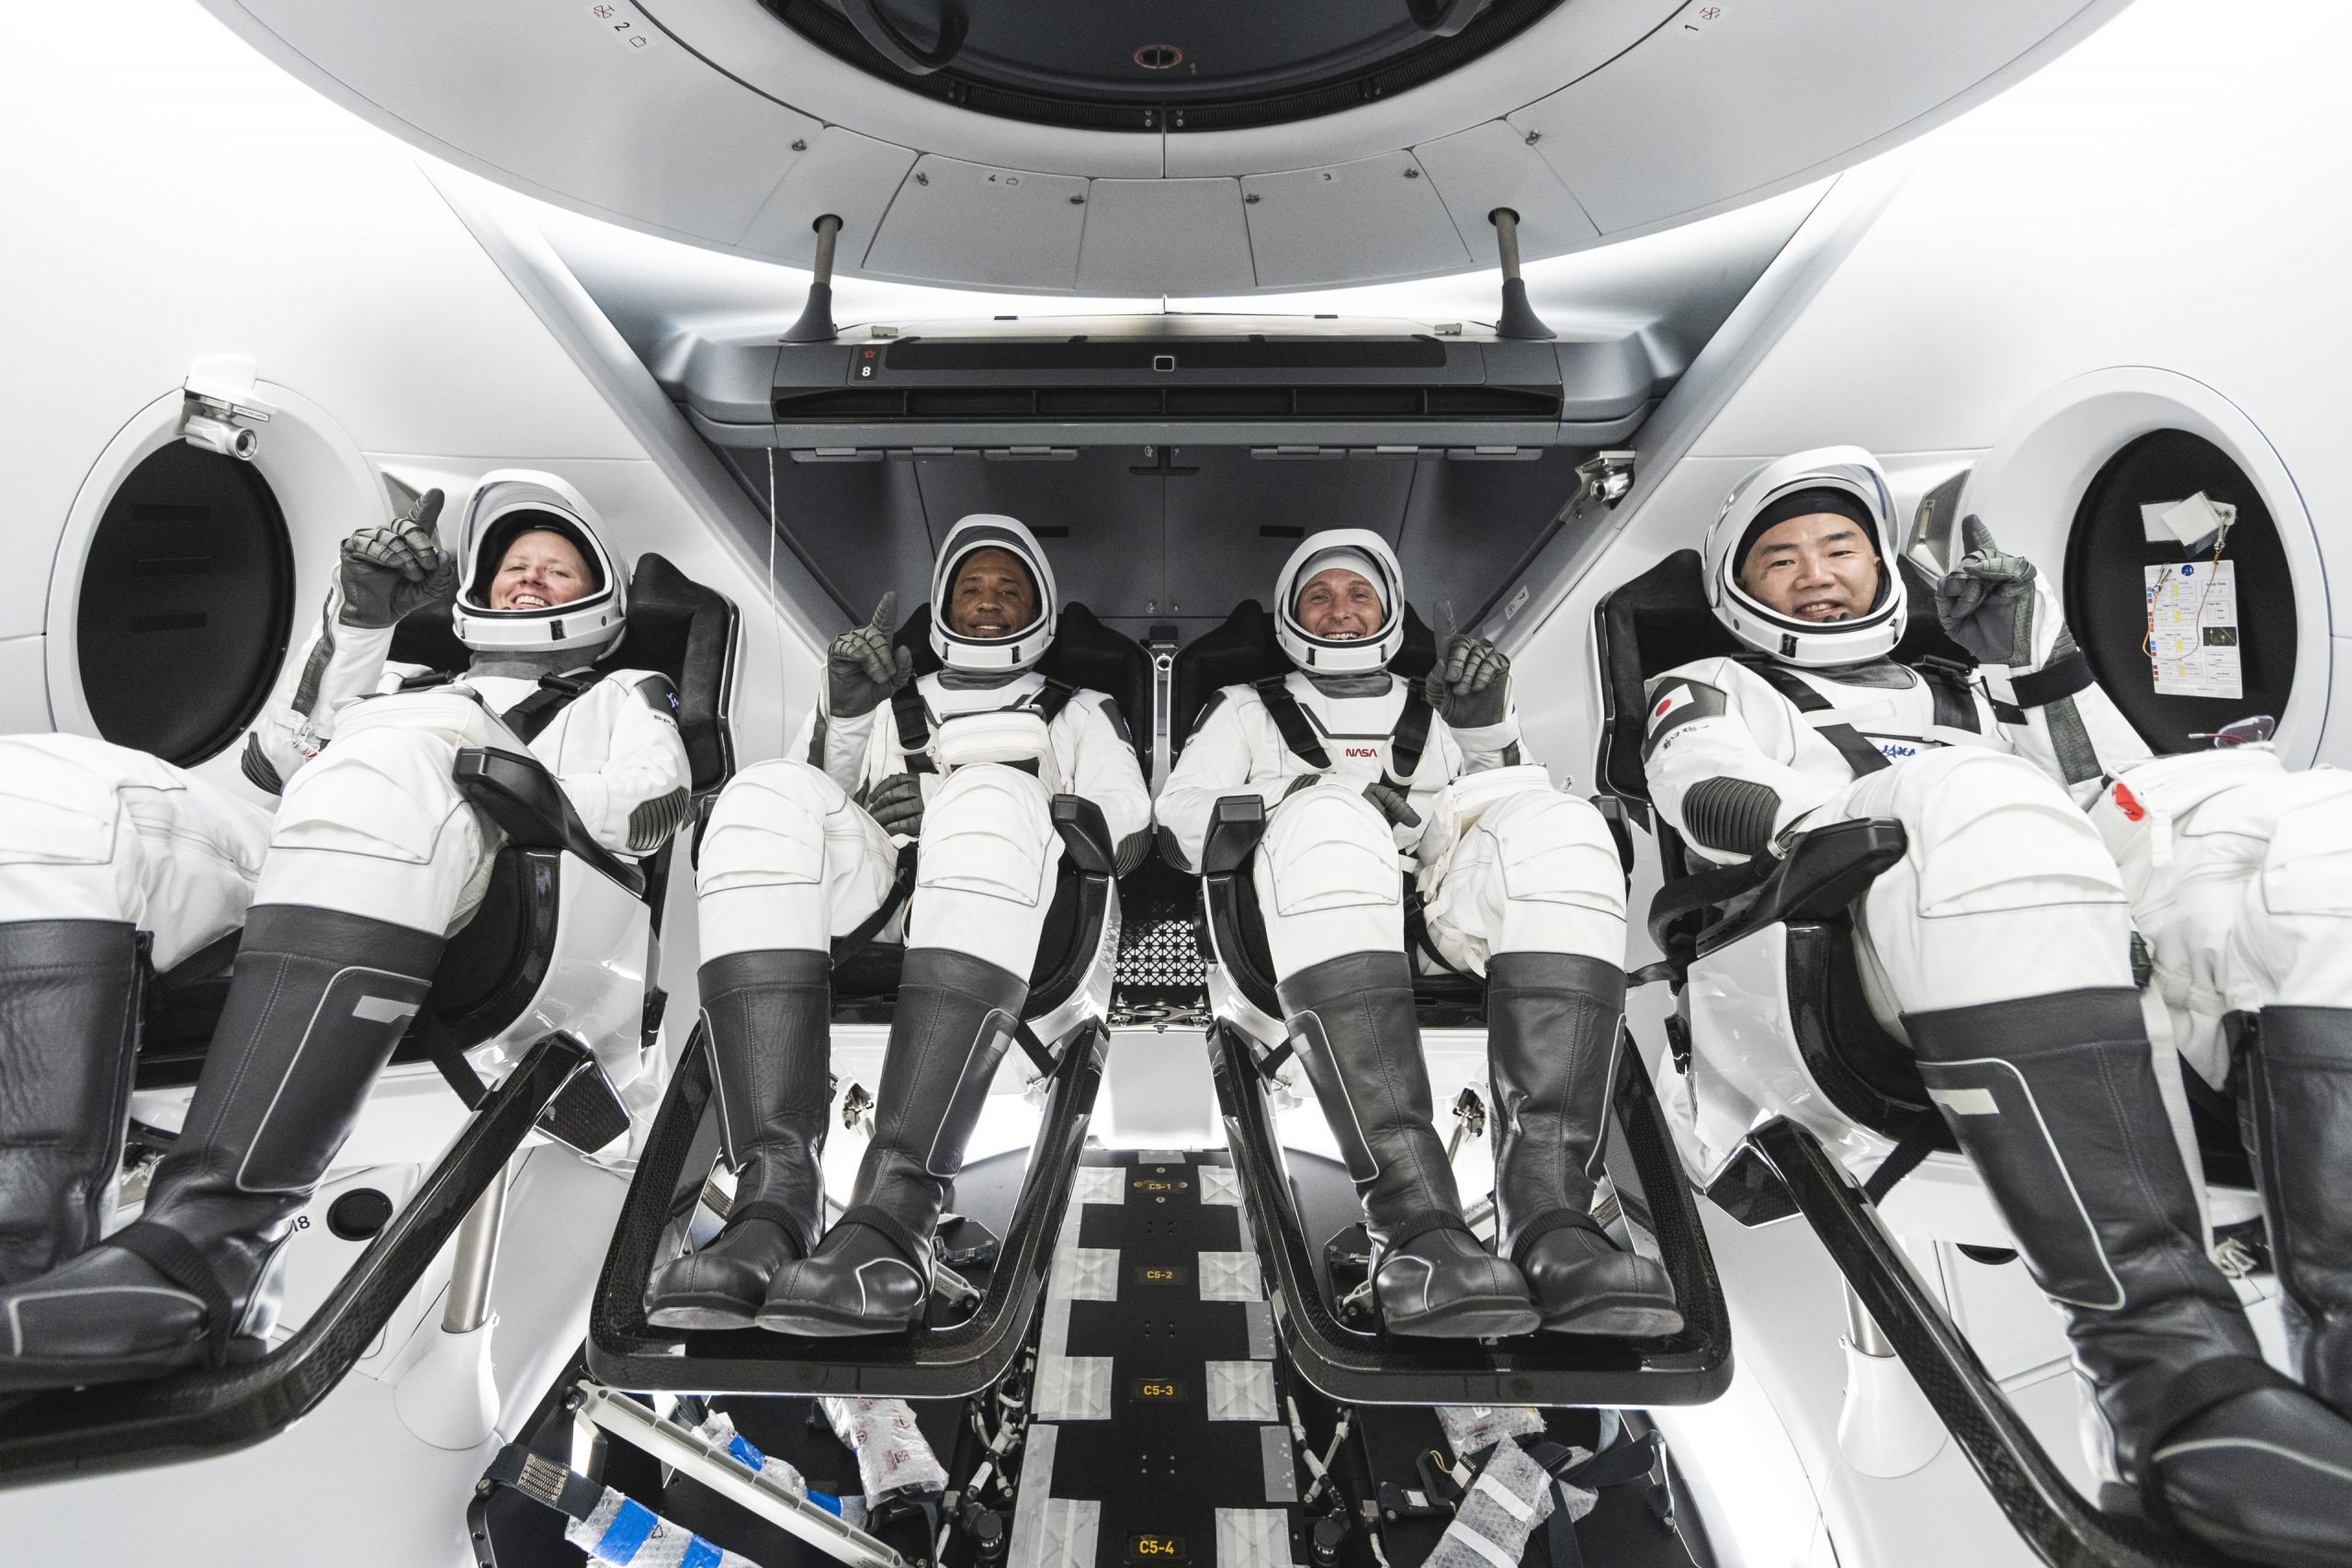 NASA's SpaceX Crew-1 astronauts